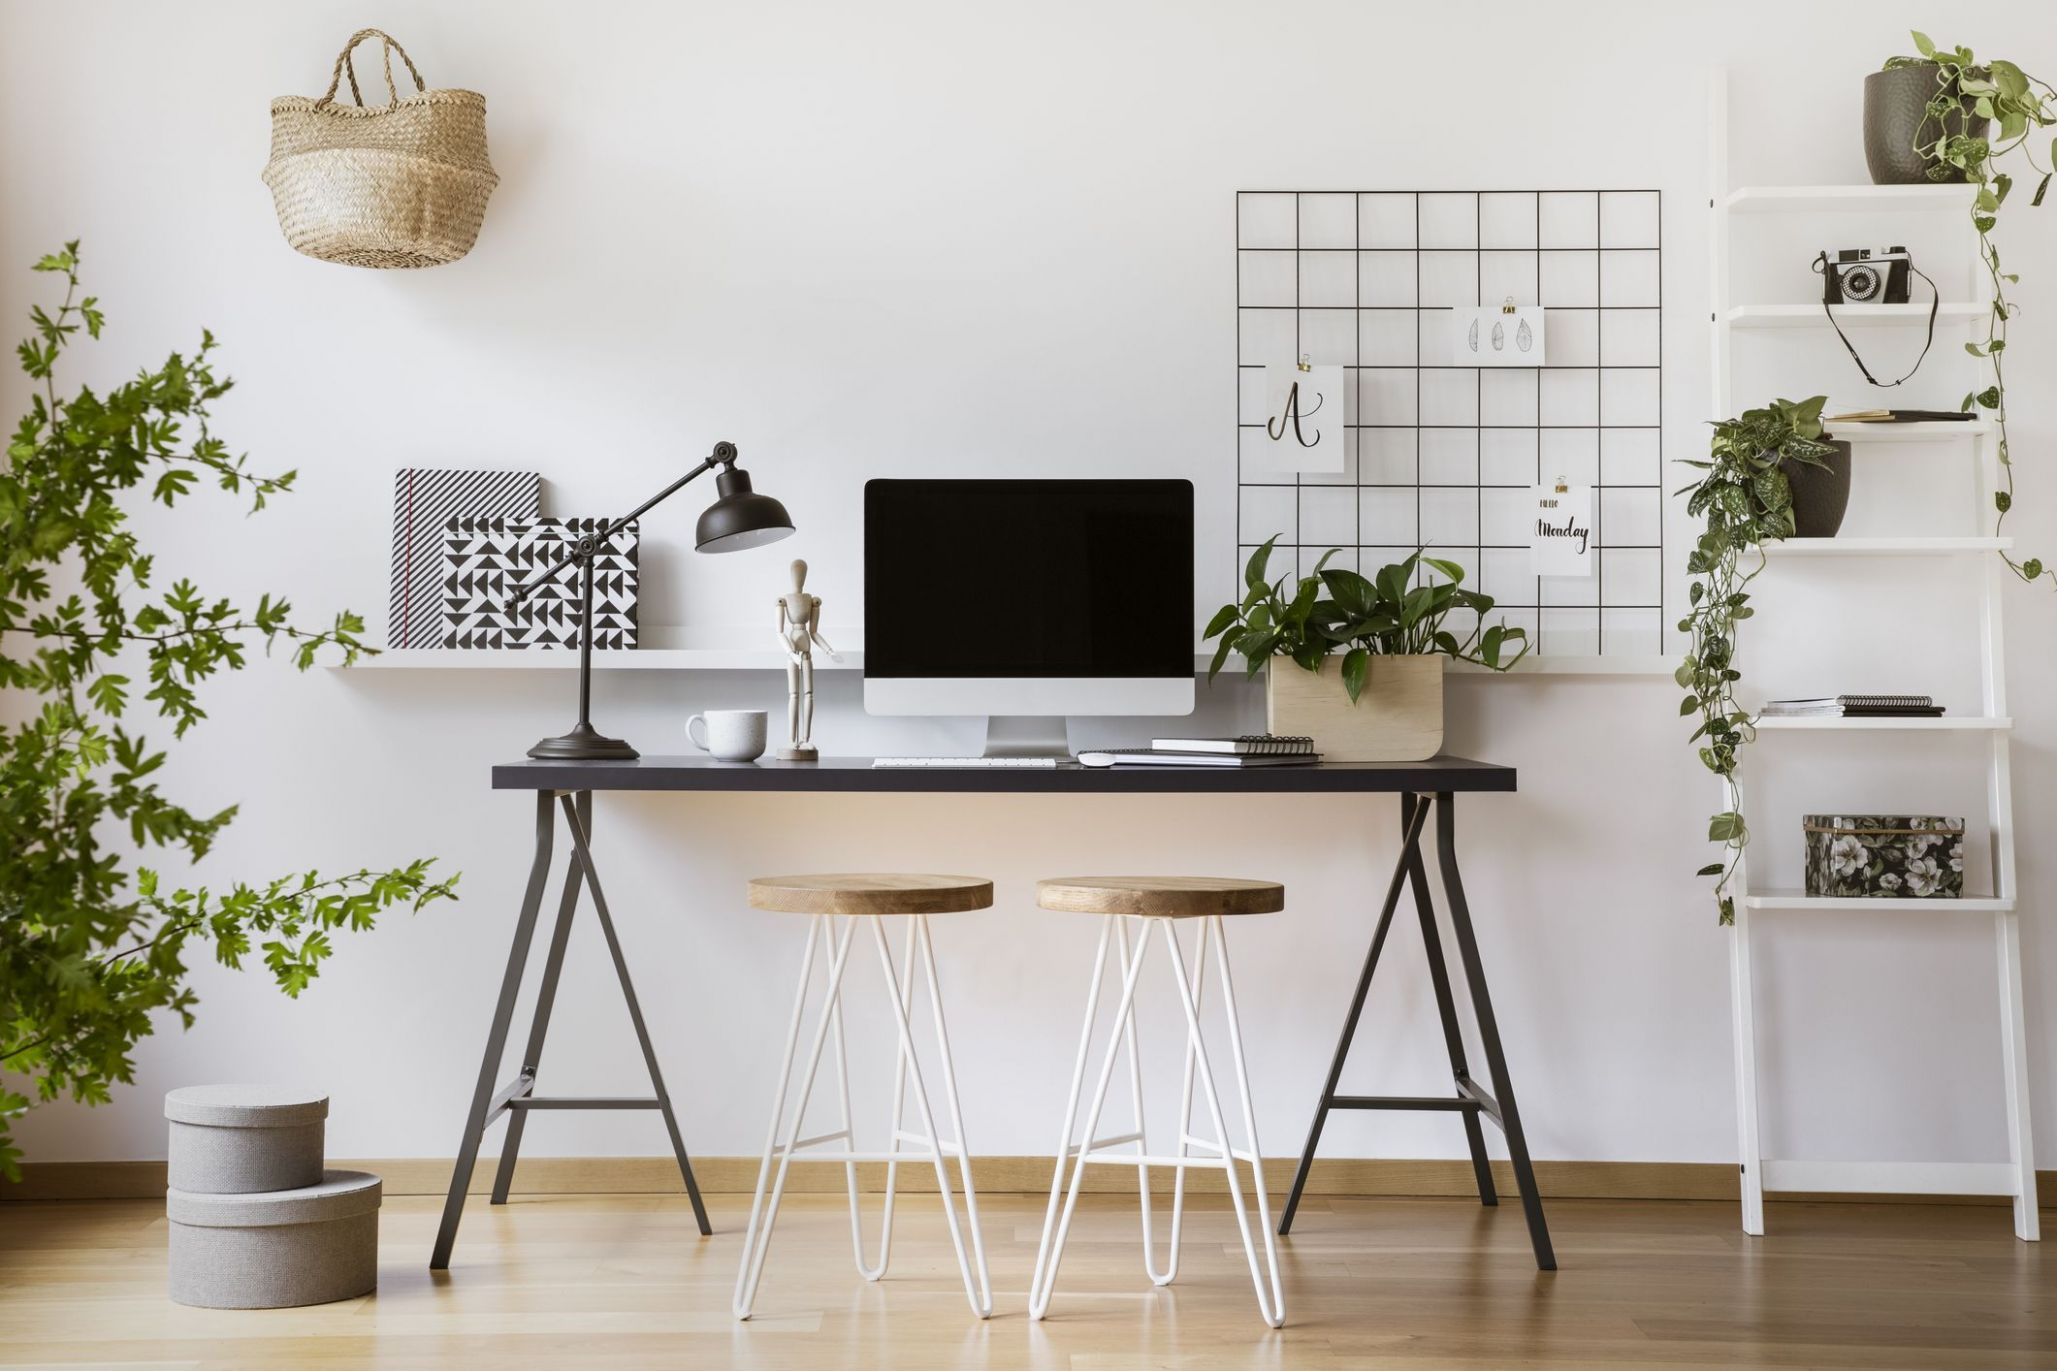 12 DIY Home Office Decor Ideas - Best Home Office Decor Projects